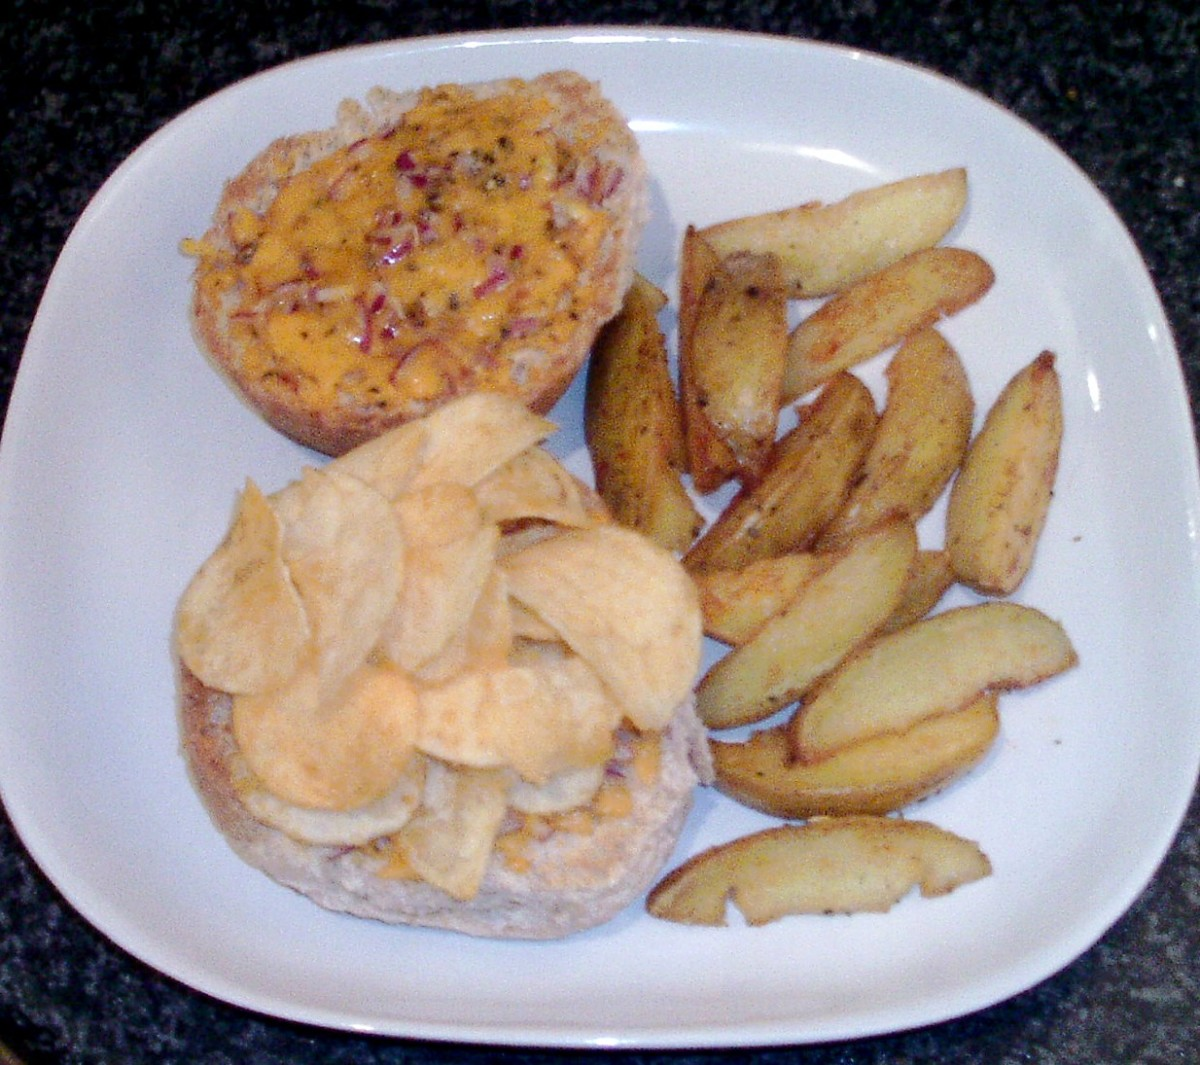 Melted cheese and onion with cheese and onion crisps sandwich and wedges